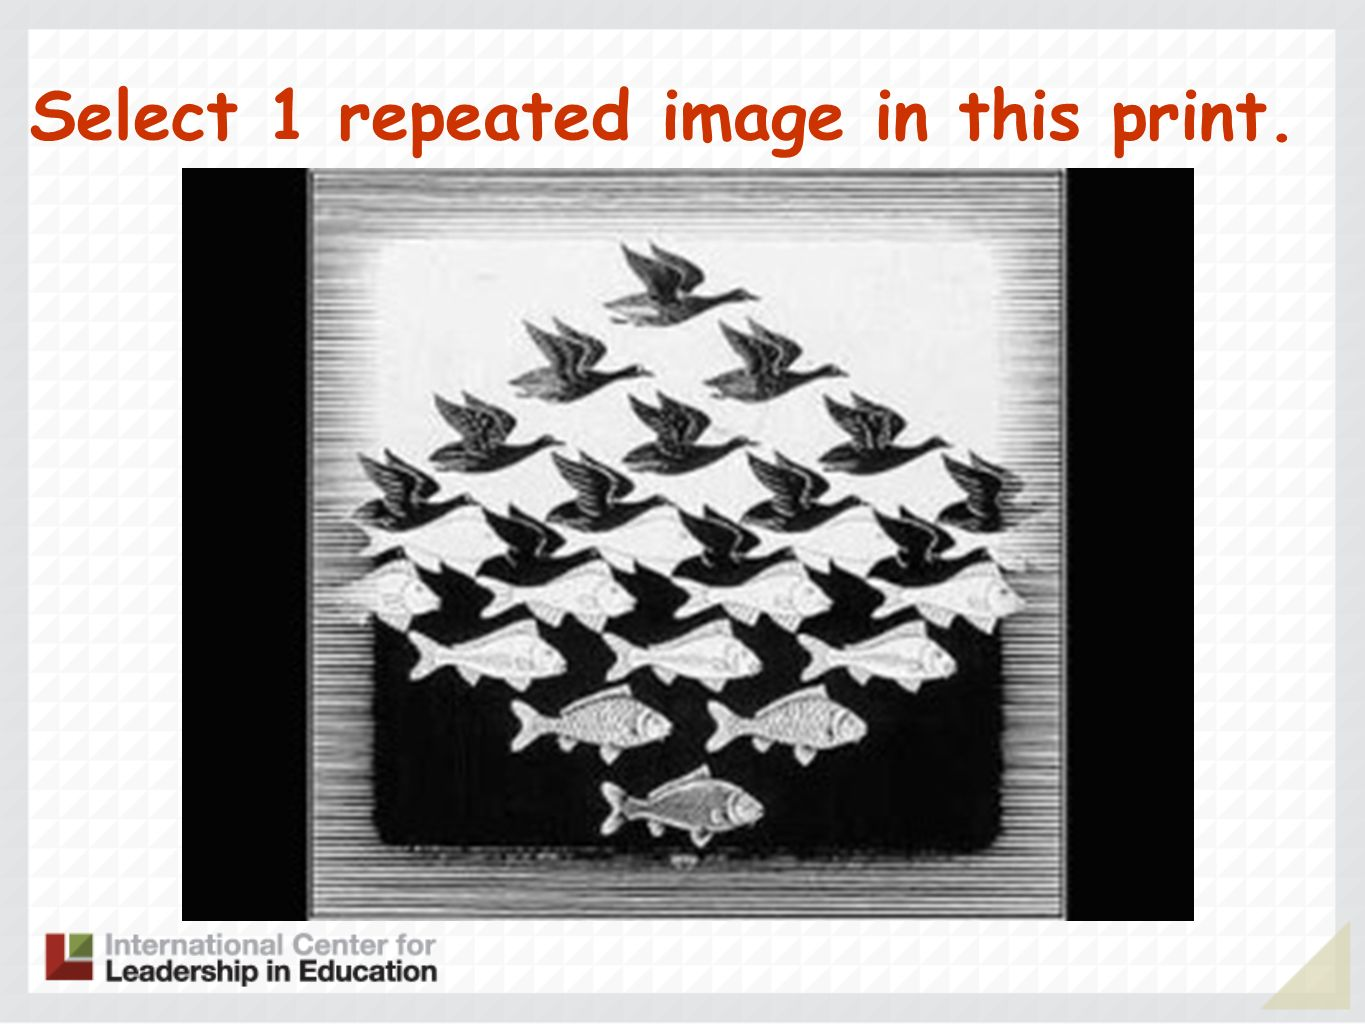 Select 1 repeated image in this print.